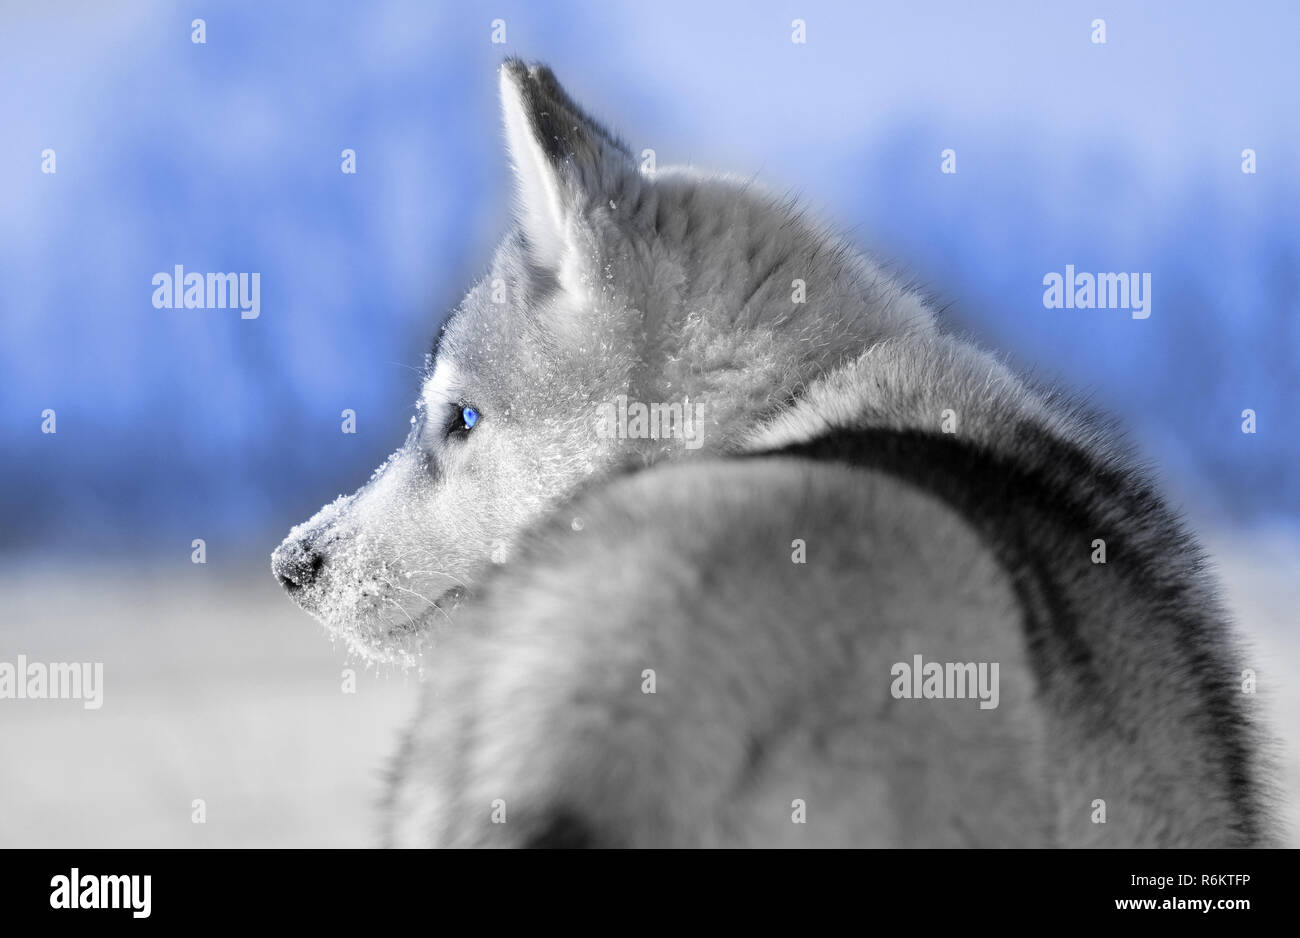 Siberian Husky Dog Puppy Gray And White Side Closeup Blue Eyes And